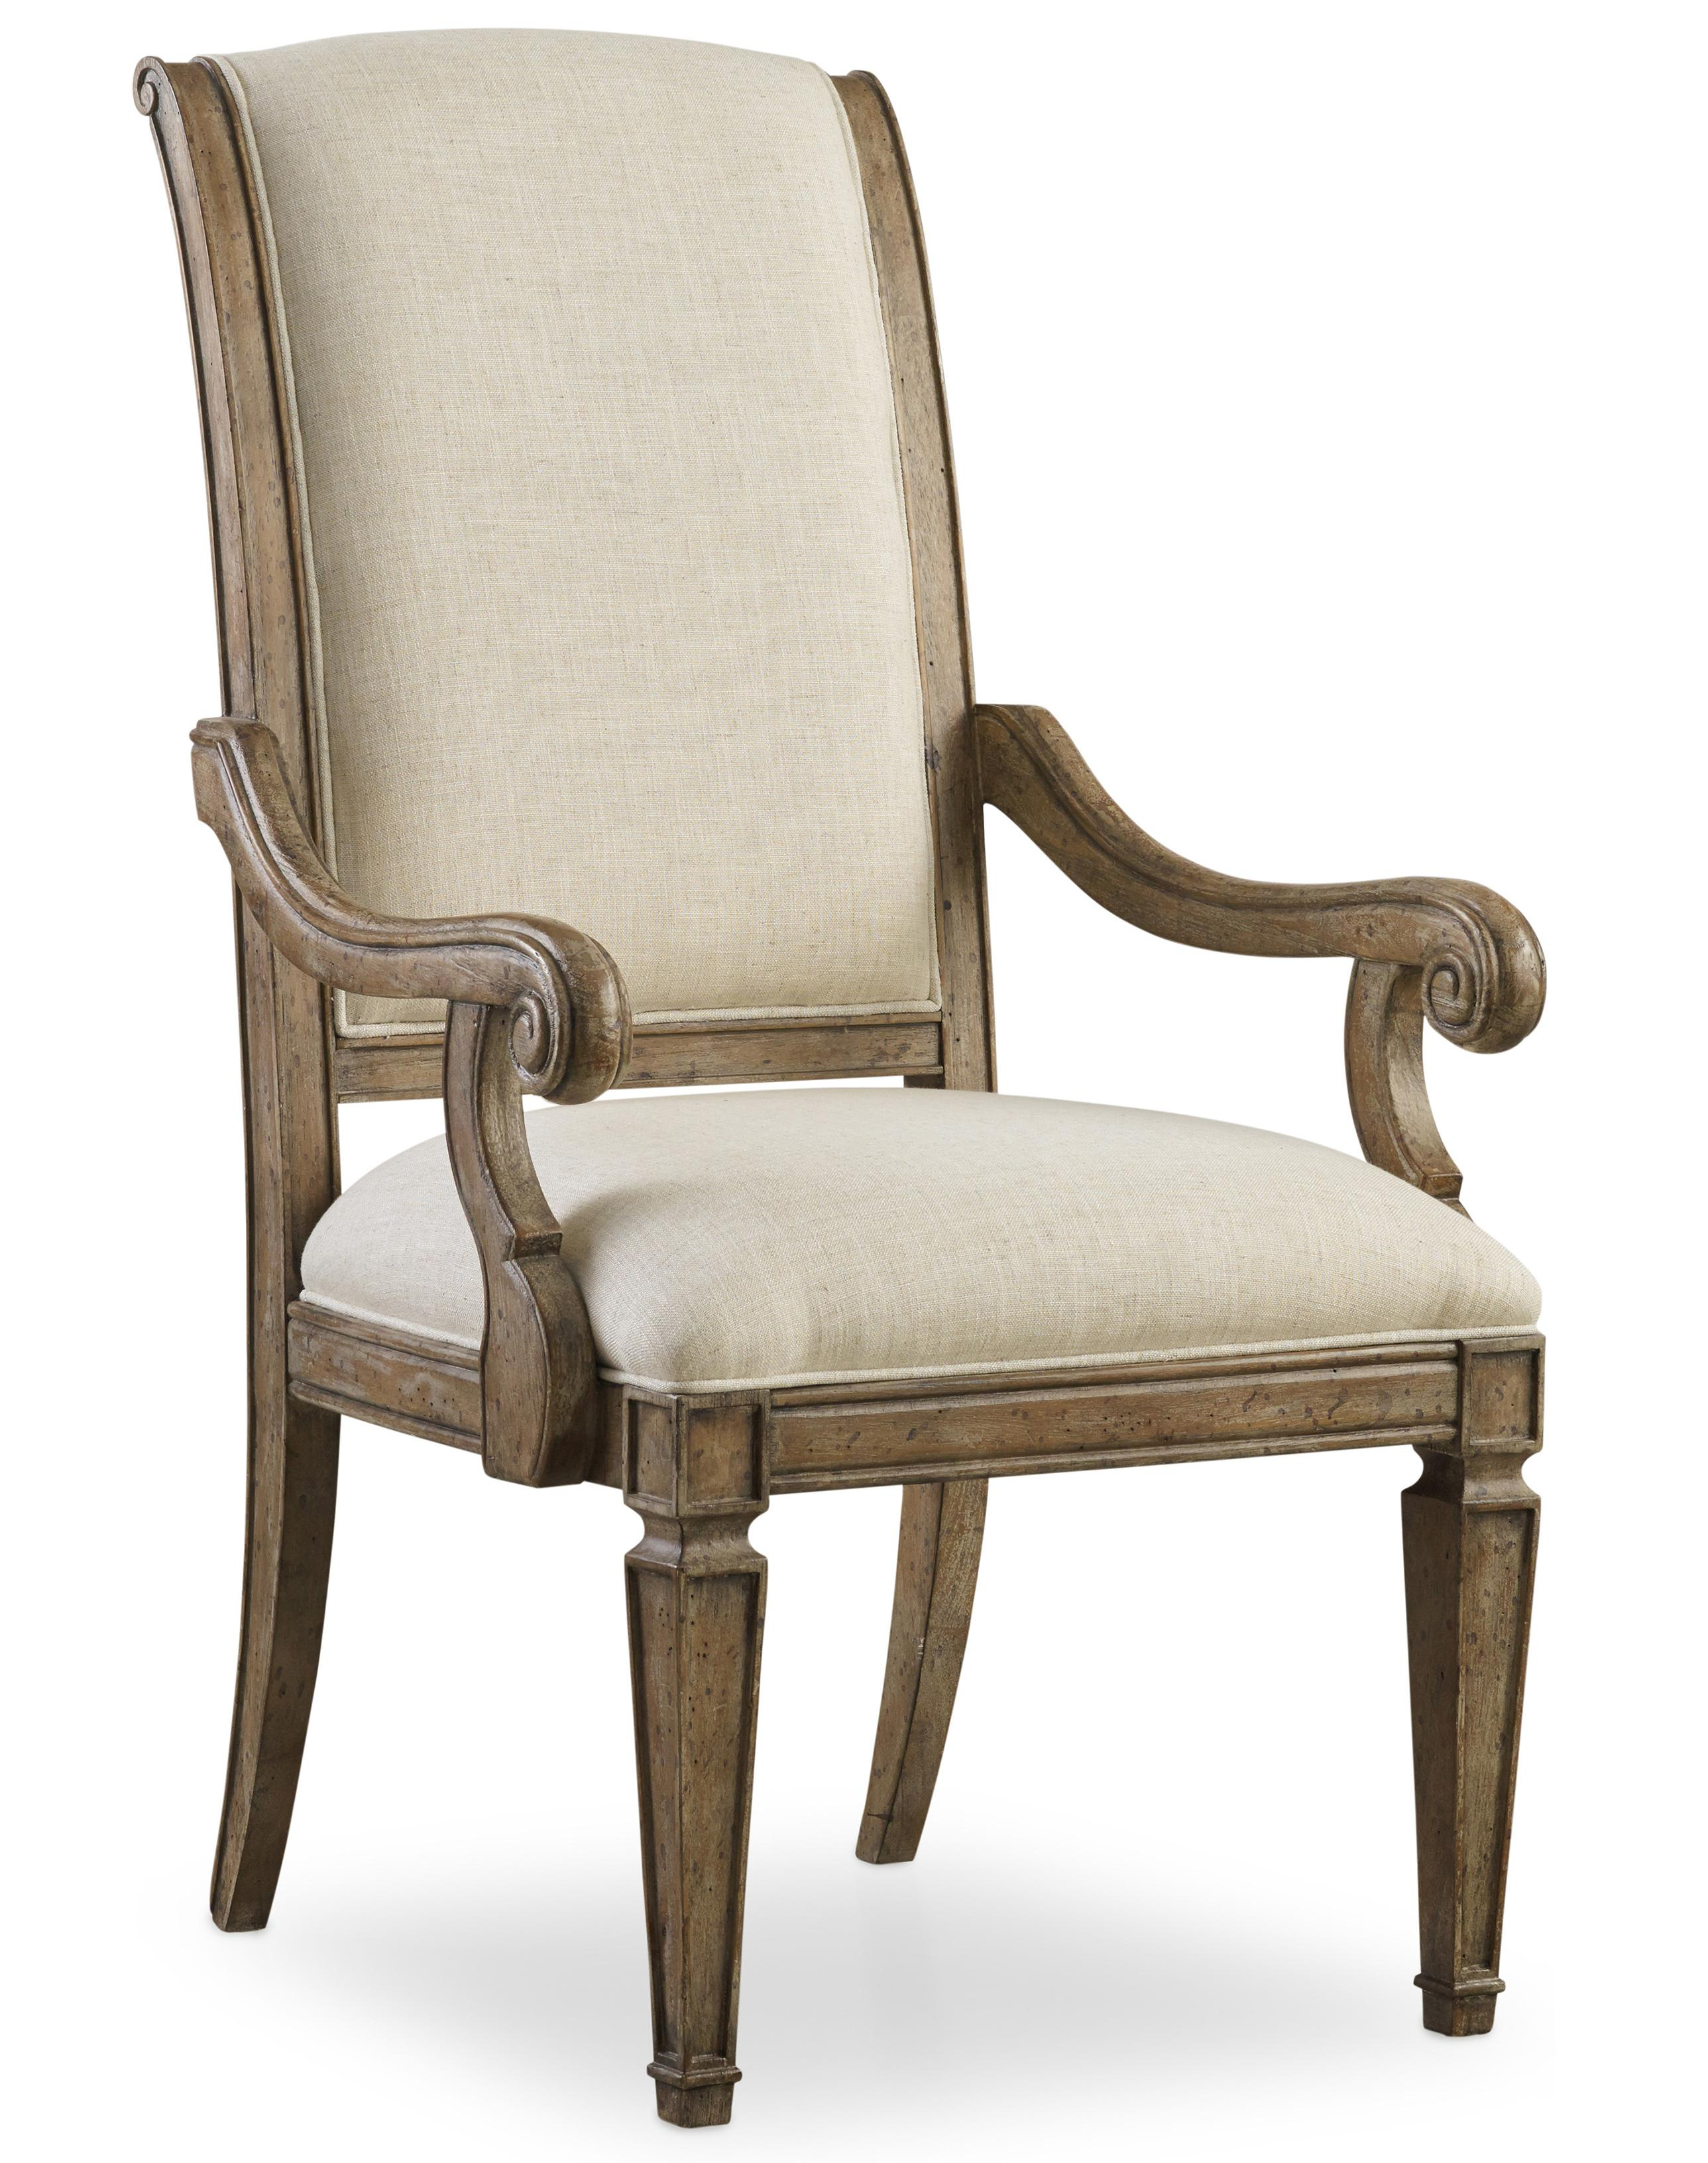 Solana Upholstered Arm Chair by Hooker Furniture at Baer's Furniture